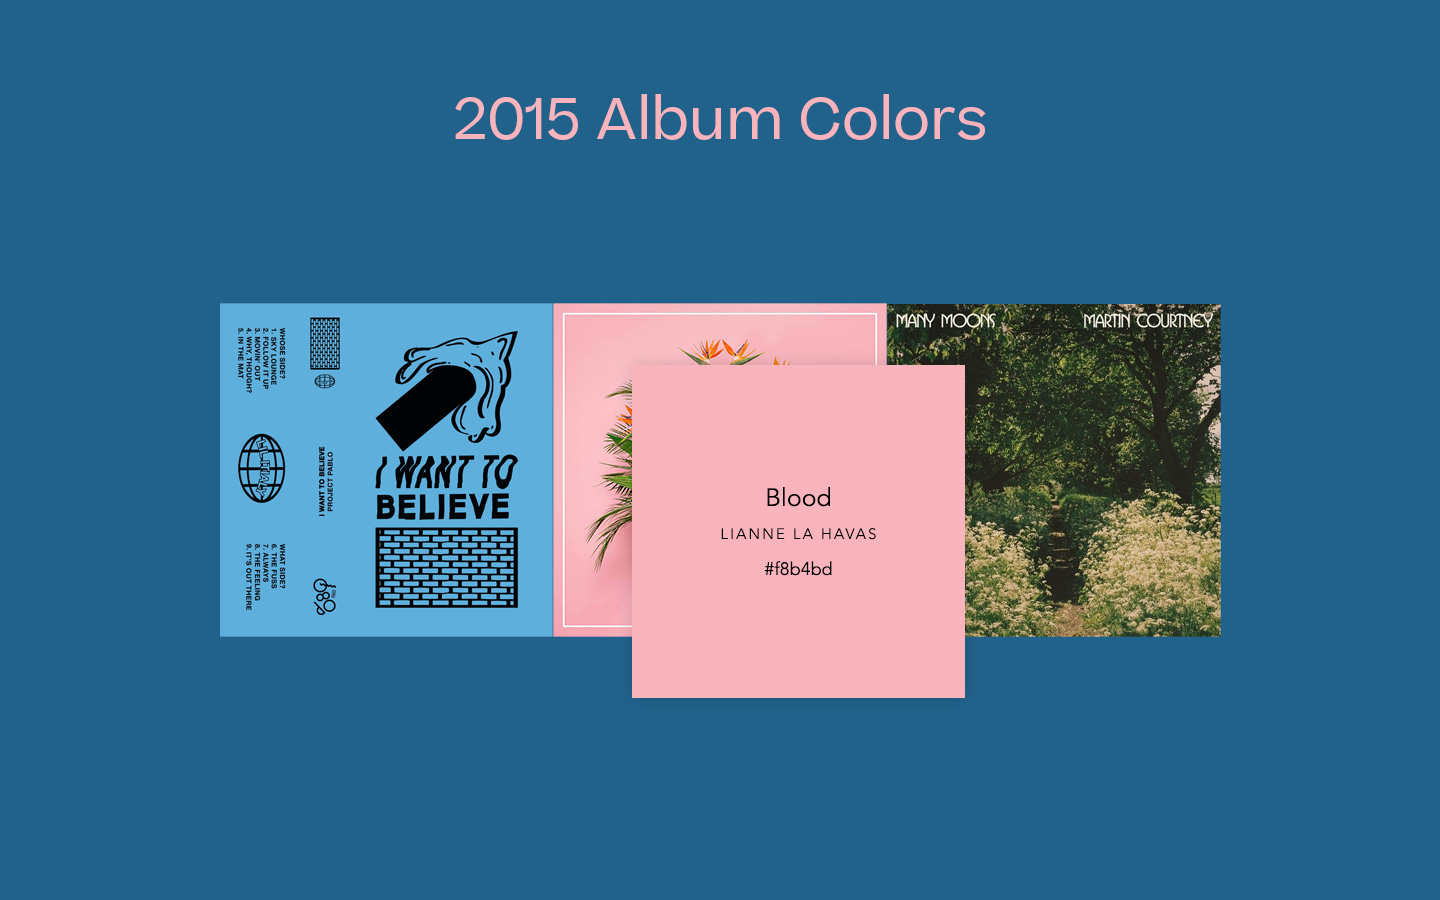 album colors